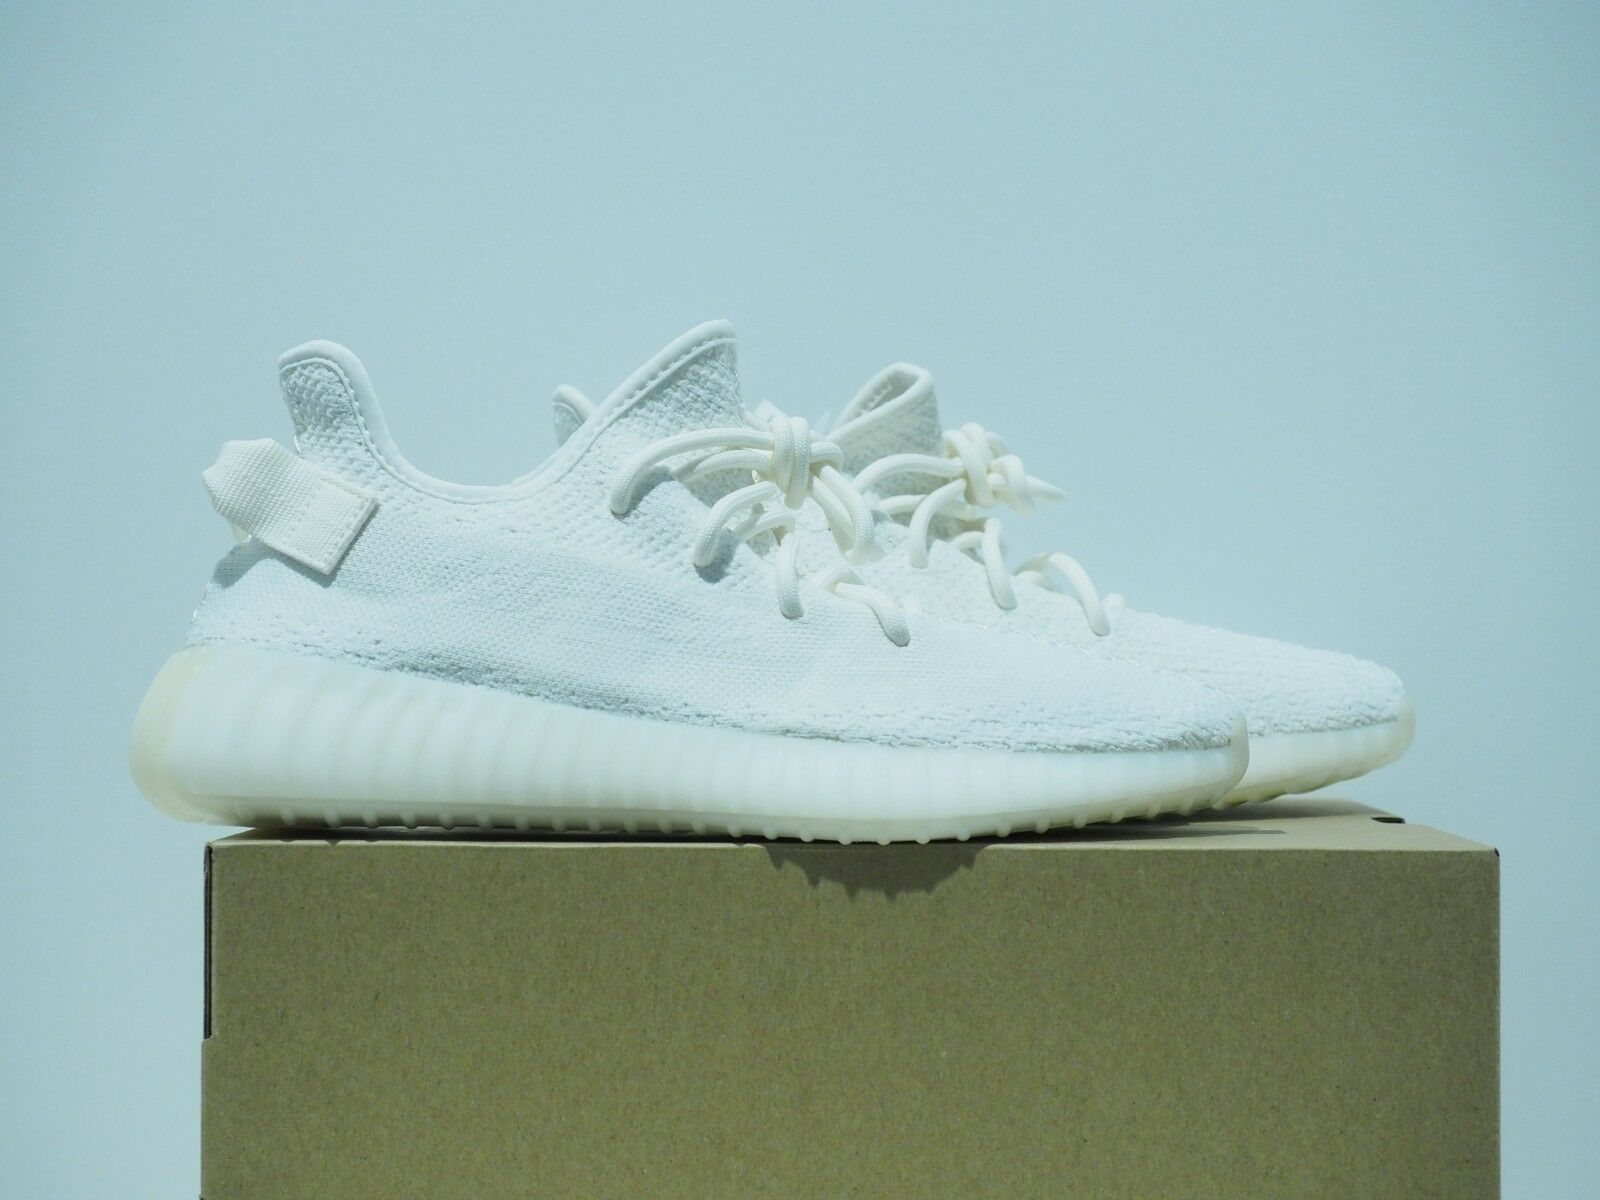 Adidas Yeezy Boost 350 V2 Cream Triple White CP9366 Size 9.5